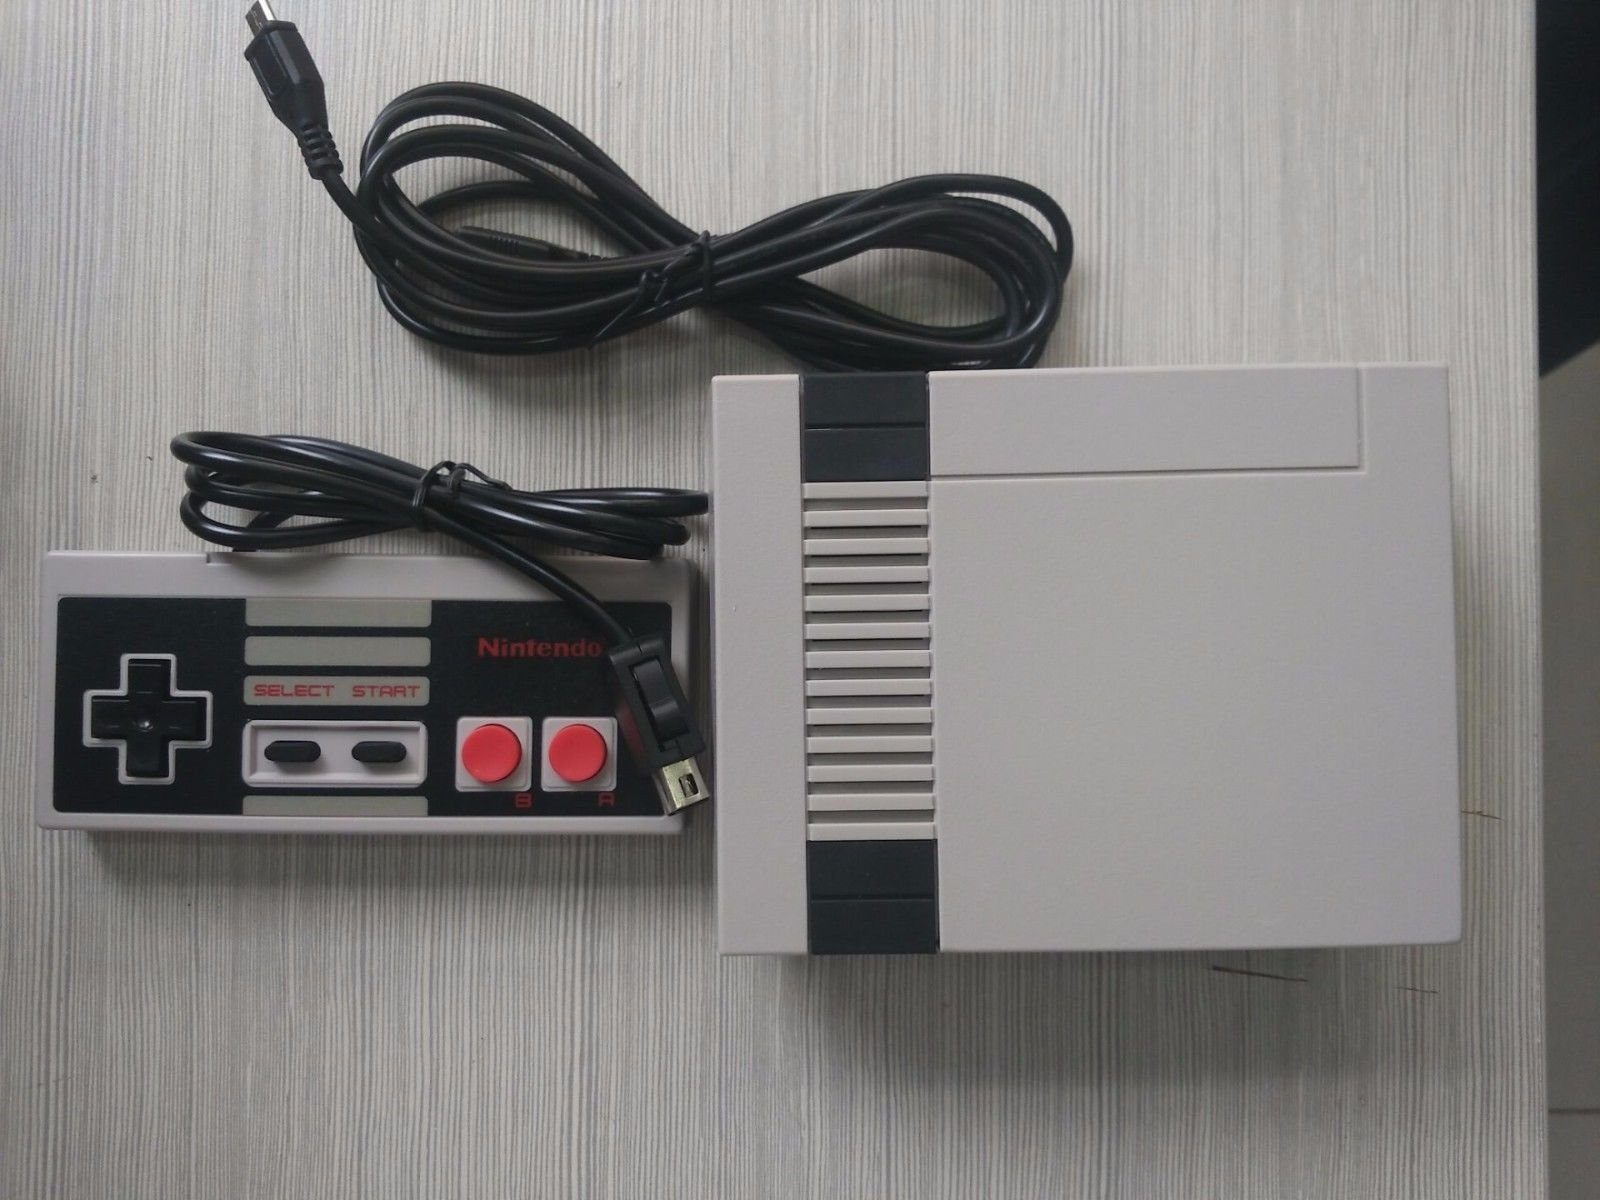 Alleged Nintendo Nes Classic Knock-Off Spotted In The Wild 1